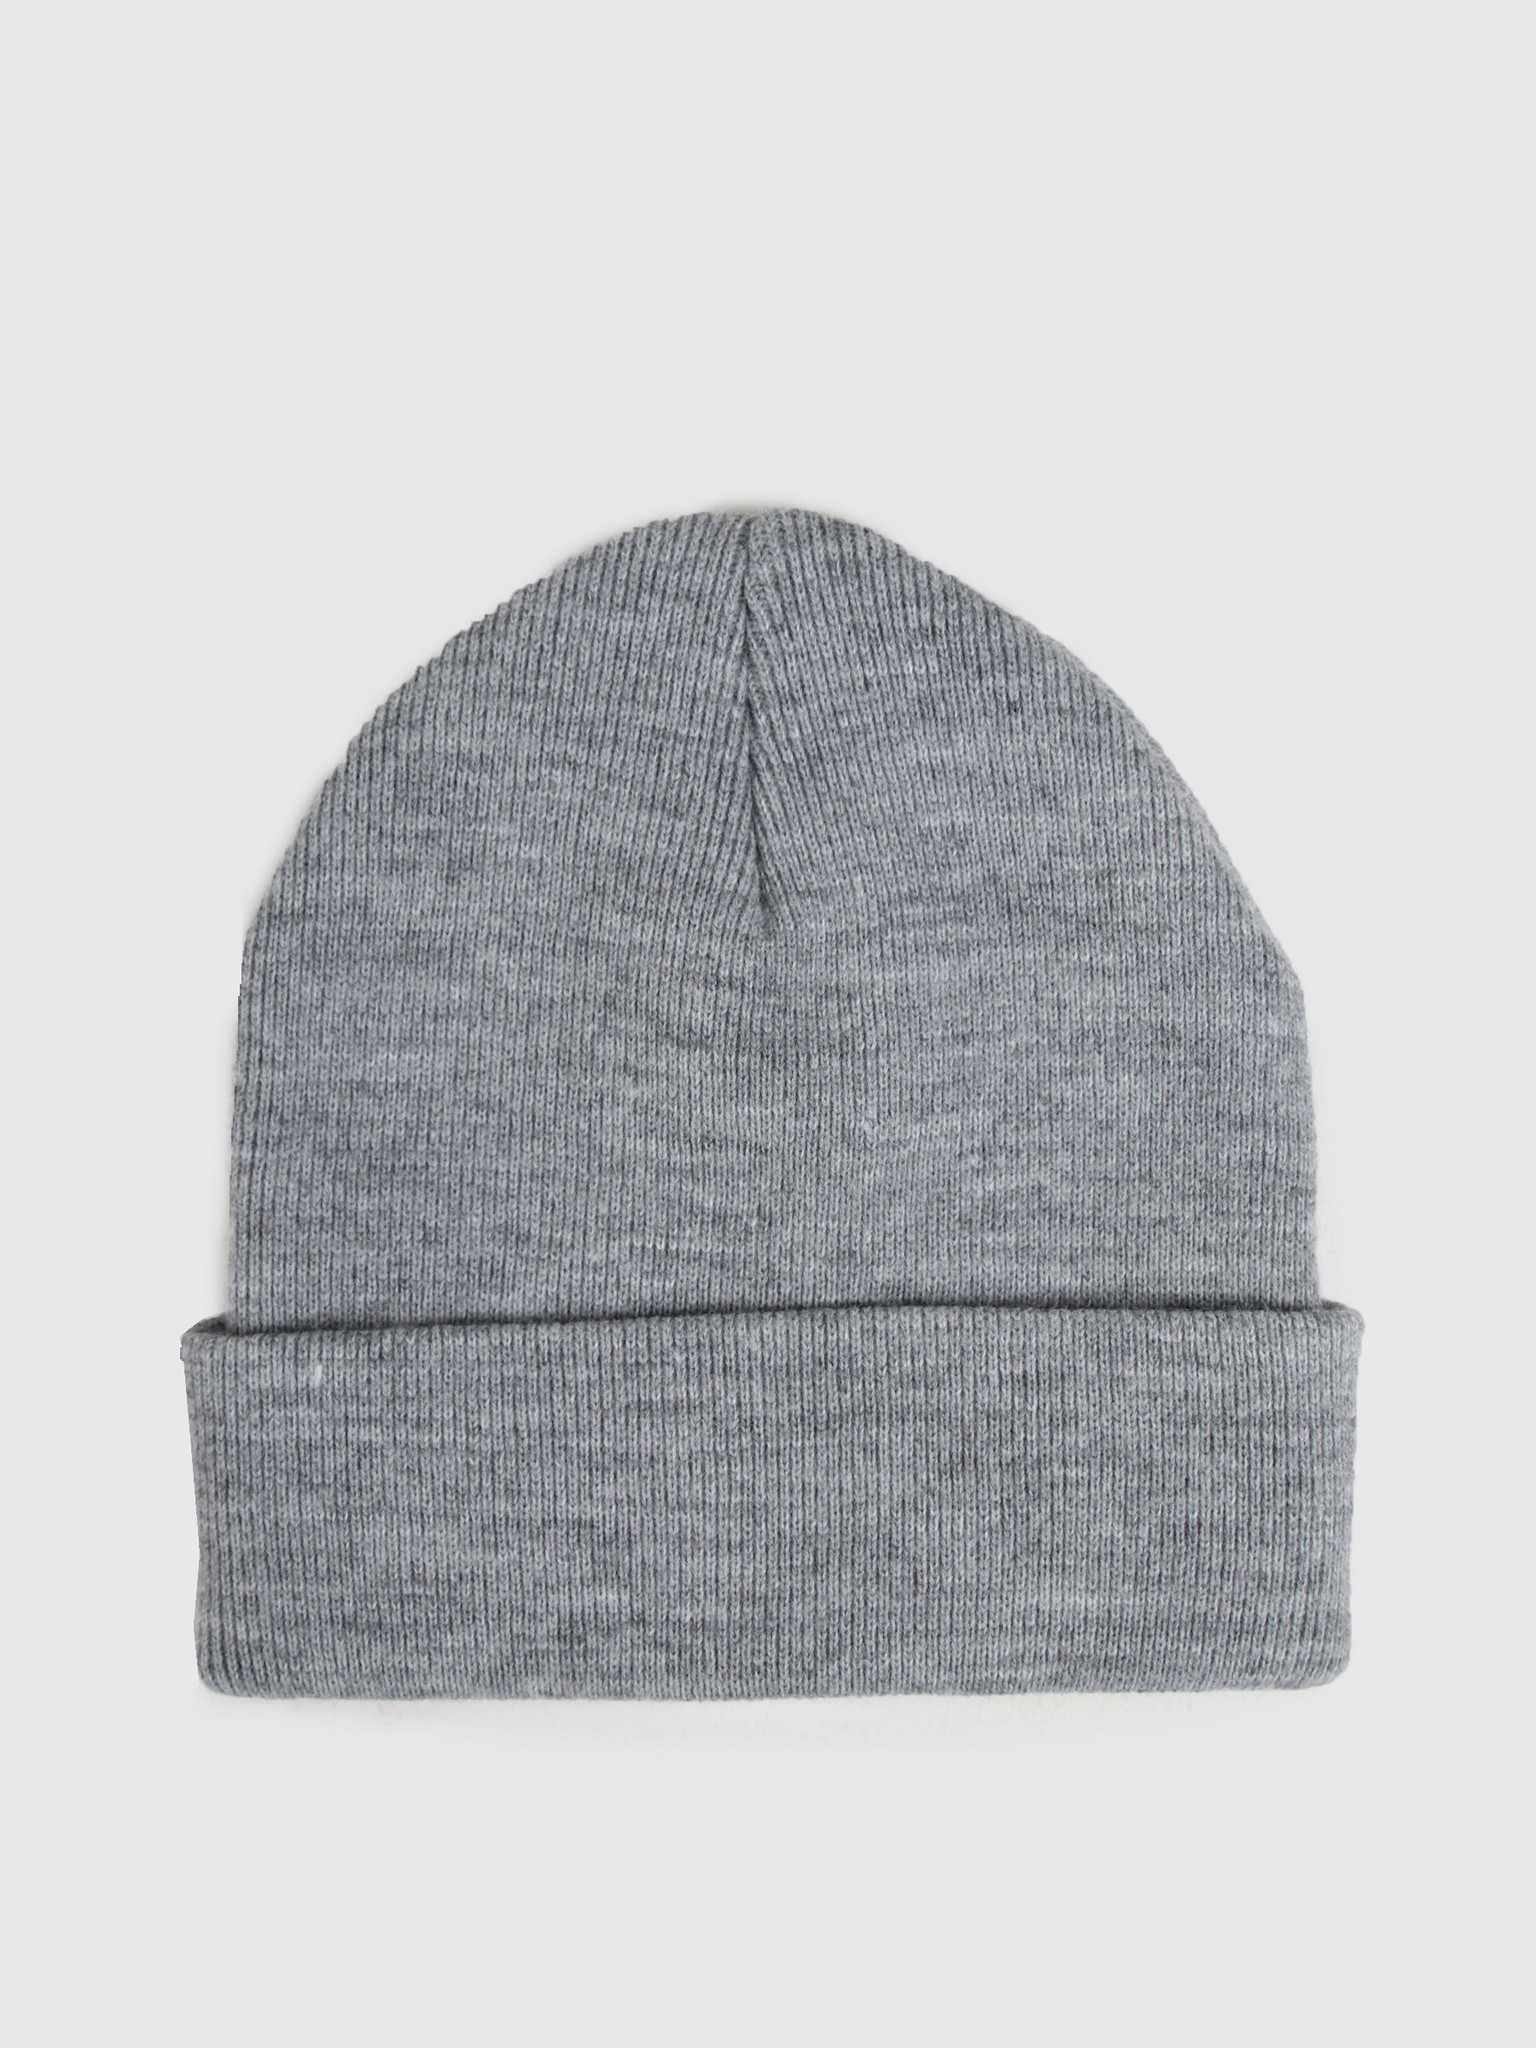 HUF HUF Triple Triangle Beanie Grey Heather Bn00089Gyhtr